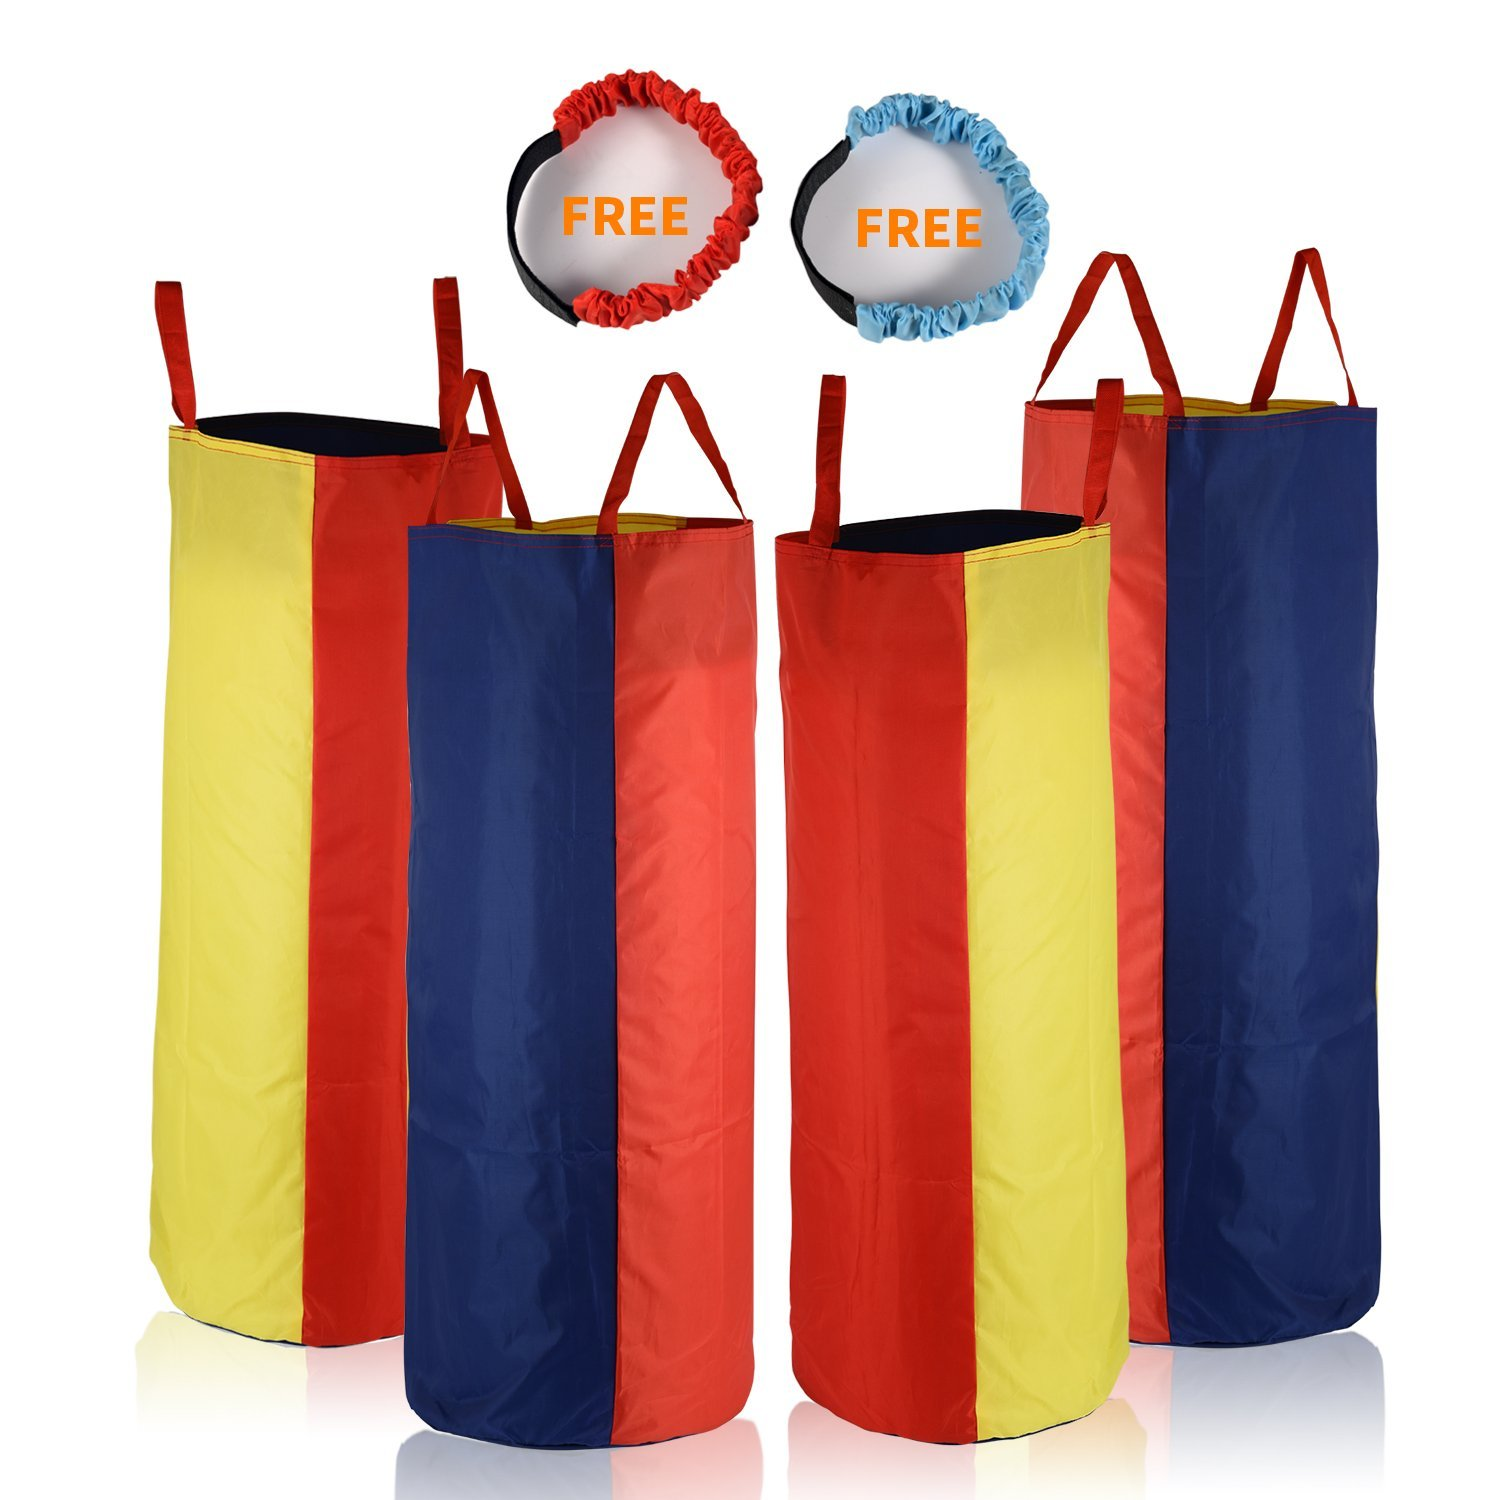 Sumapner Potato Sack Race Bags 34'' Hx20 W(Pack of 4) Three-legged Race Outdoor Activities Family Gatherings Games